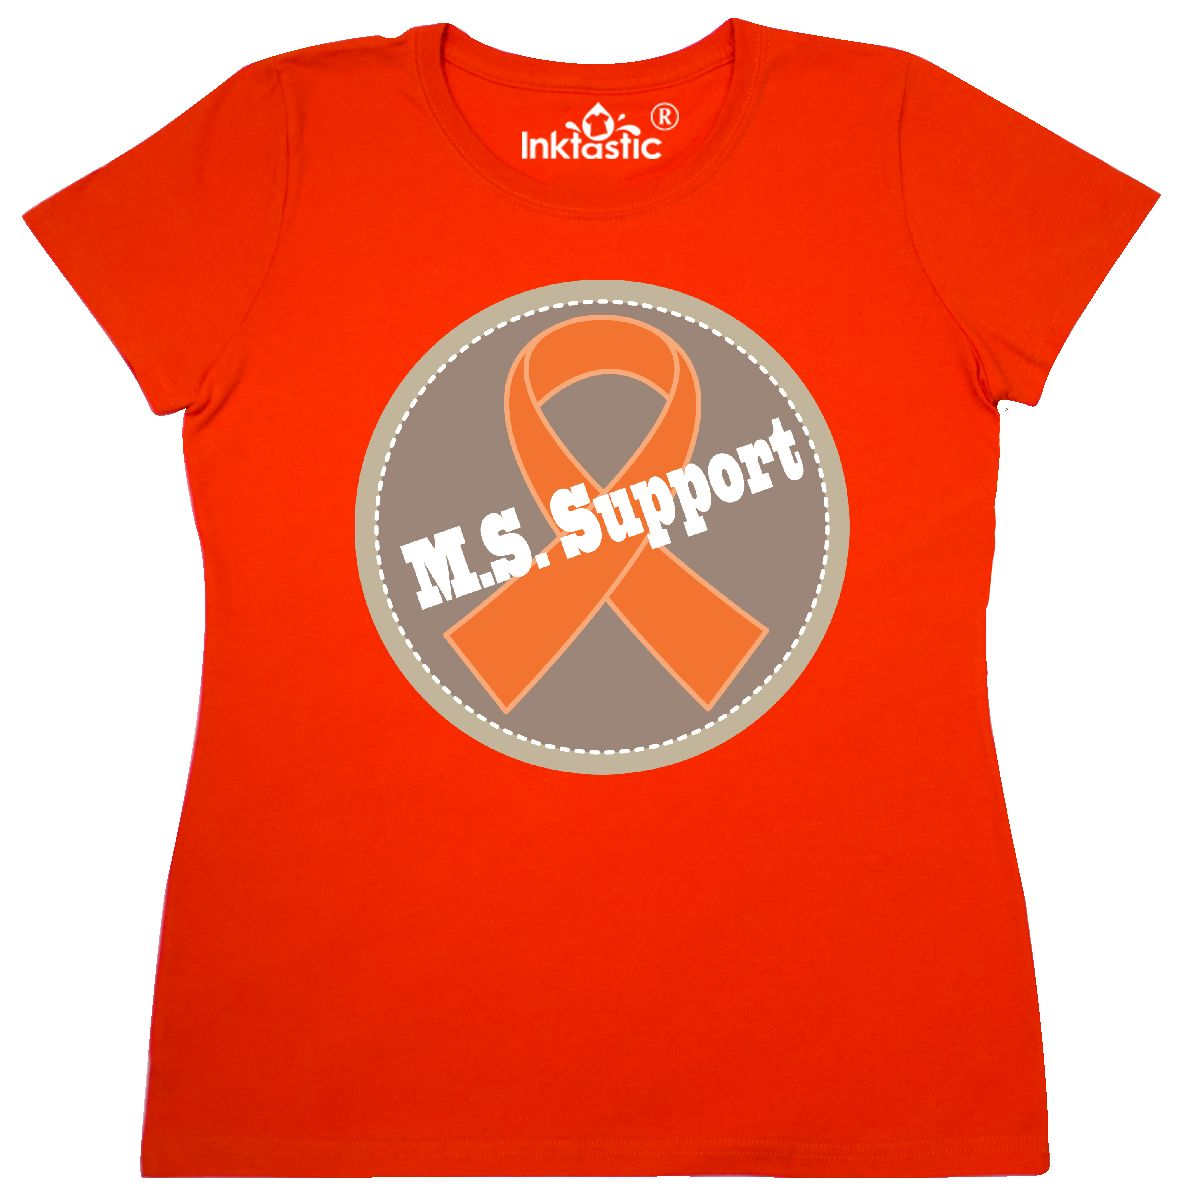 Inktastic Multiple Sclerosis Support Logo Women's T-Shirt M.s. Ms Walk Ribbon